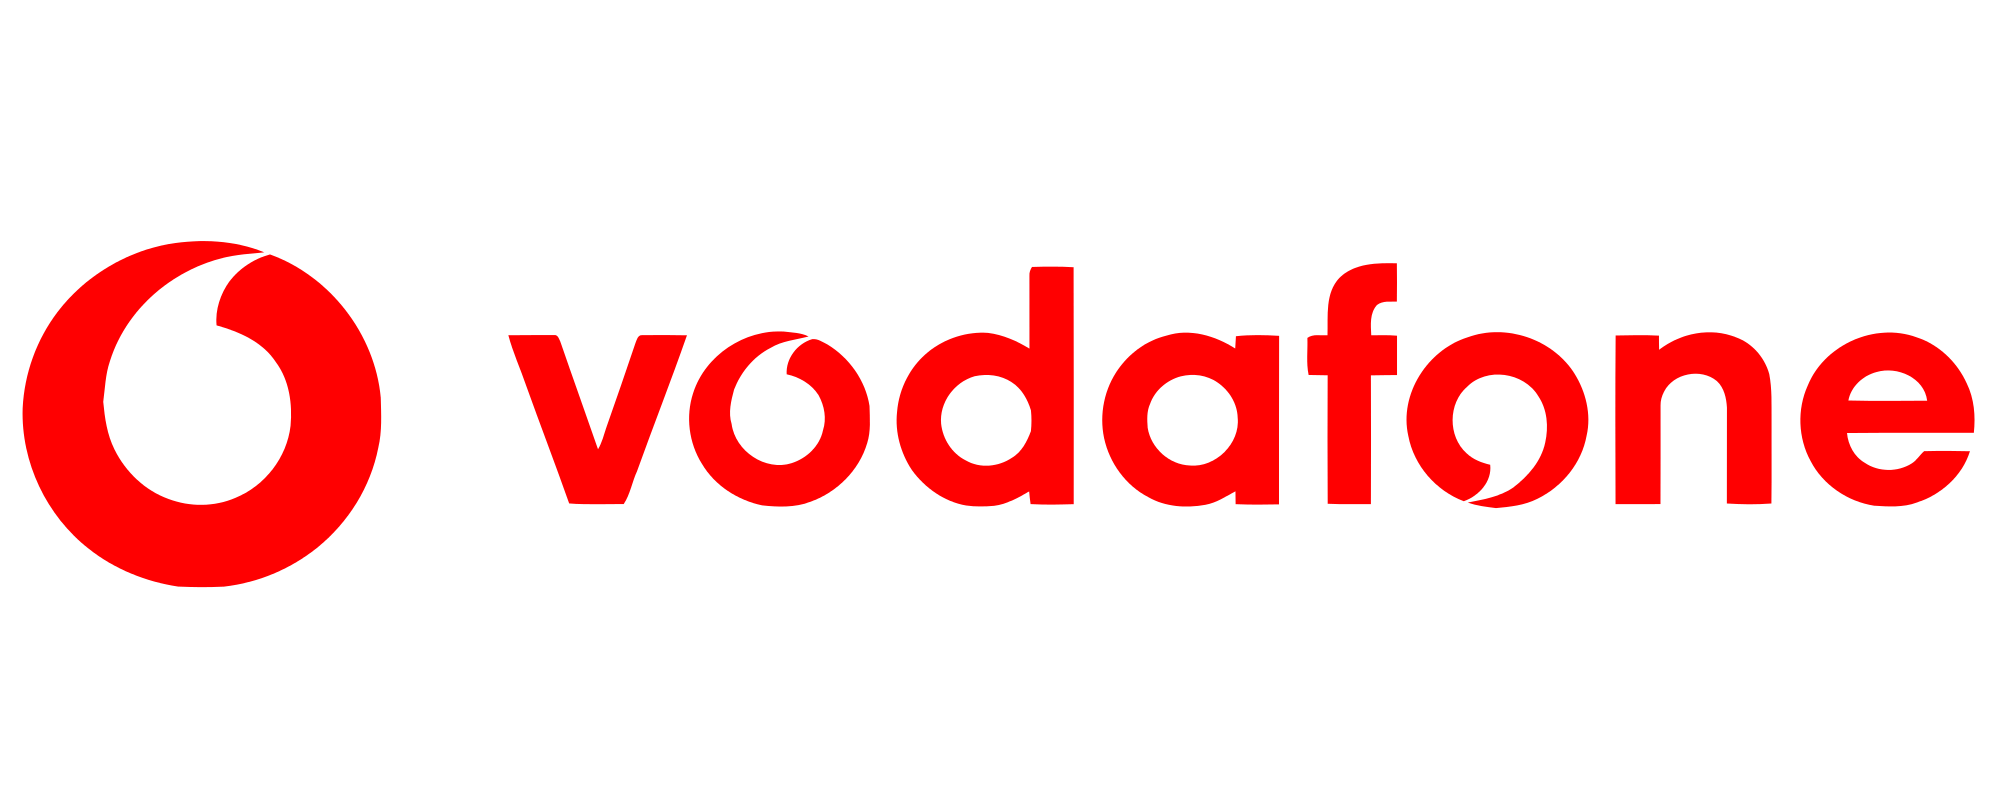 Vodafone PNG